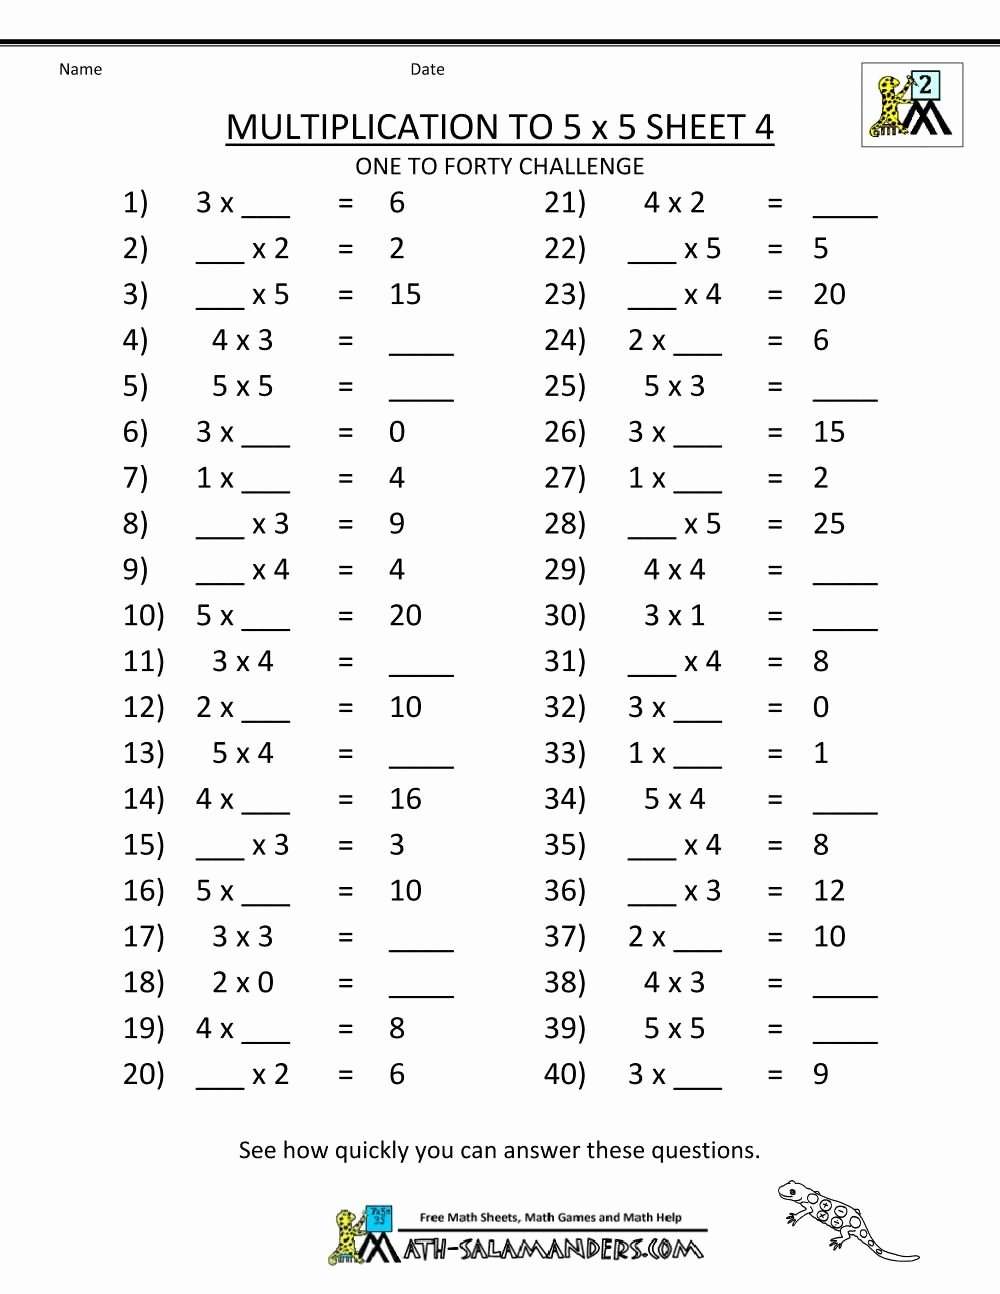 Custom Multiplication Worksheets New Math Worksheet 59 Printable Math Sheets Grade 3 Image